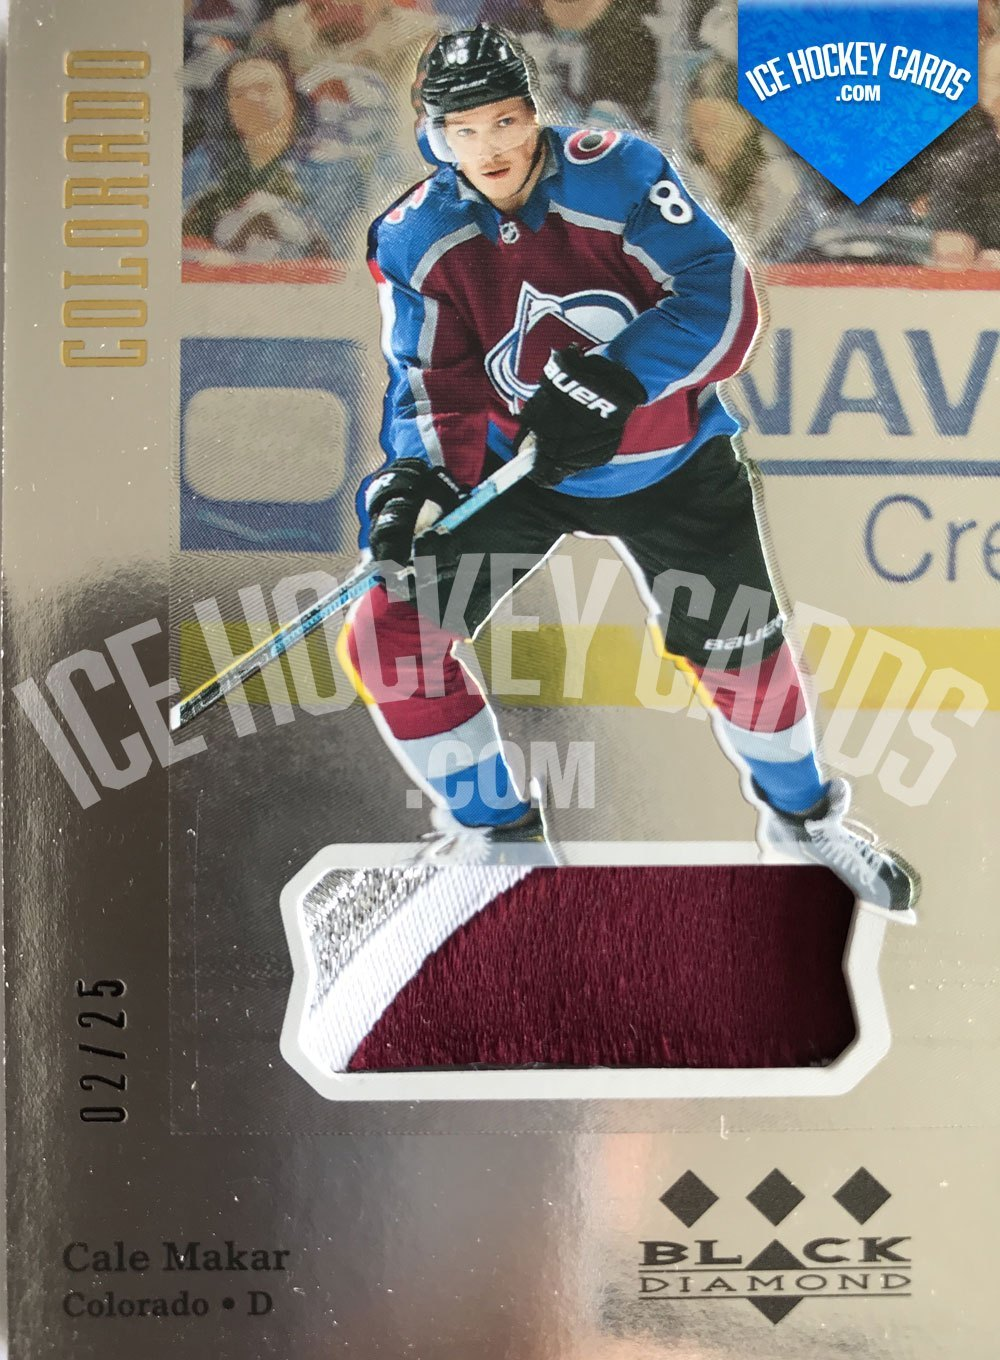 Upper Deck - Black Diamond 19-20 - Cale Makar Retro Tribute Materials Rookie Card 2 of 25 RARE